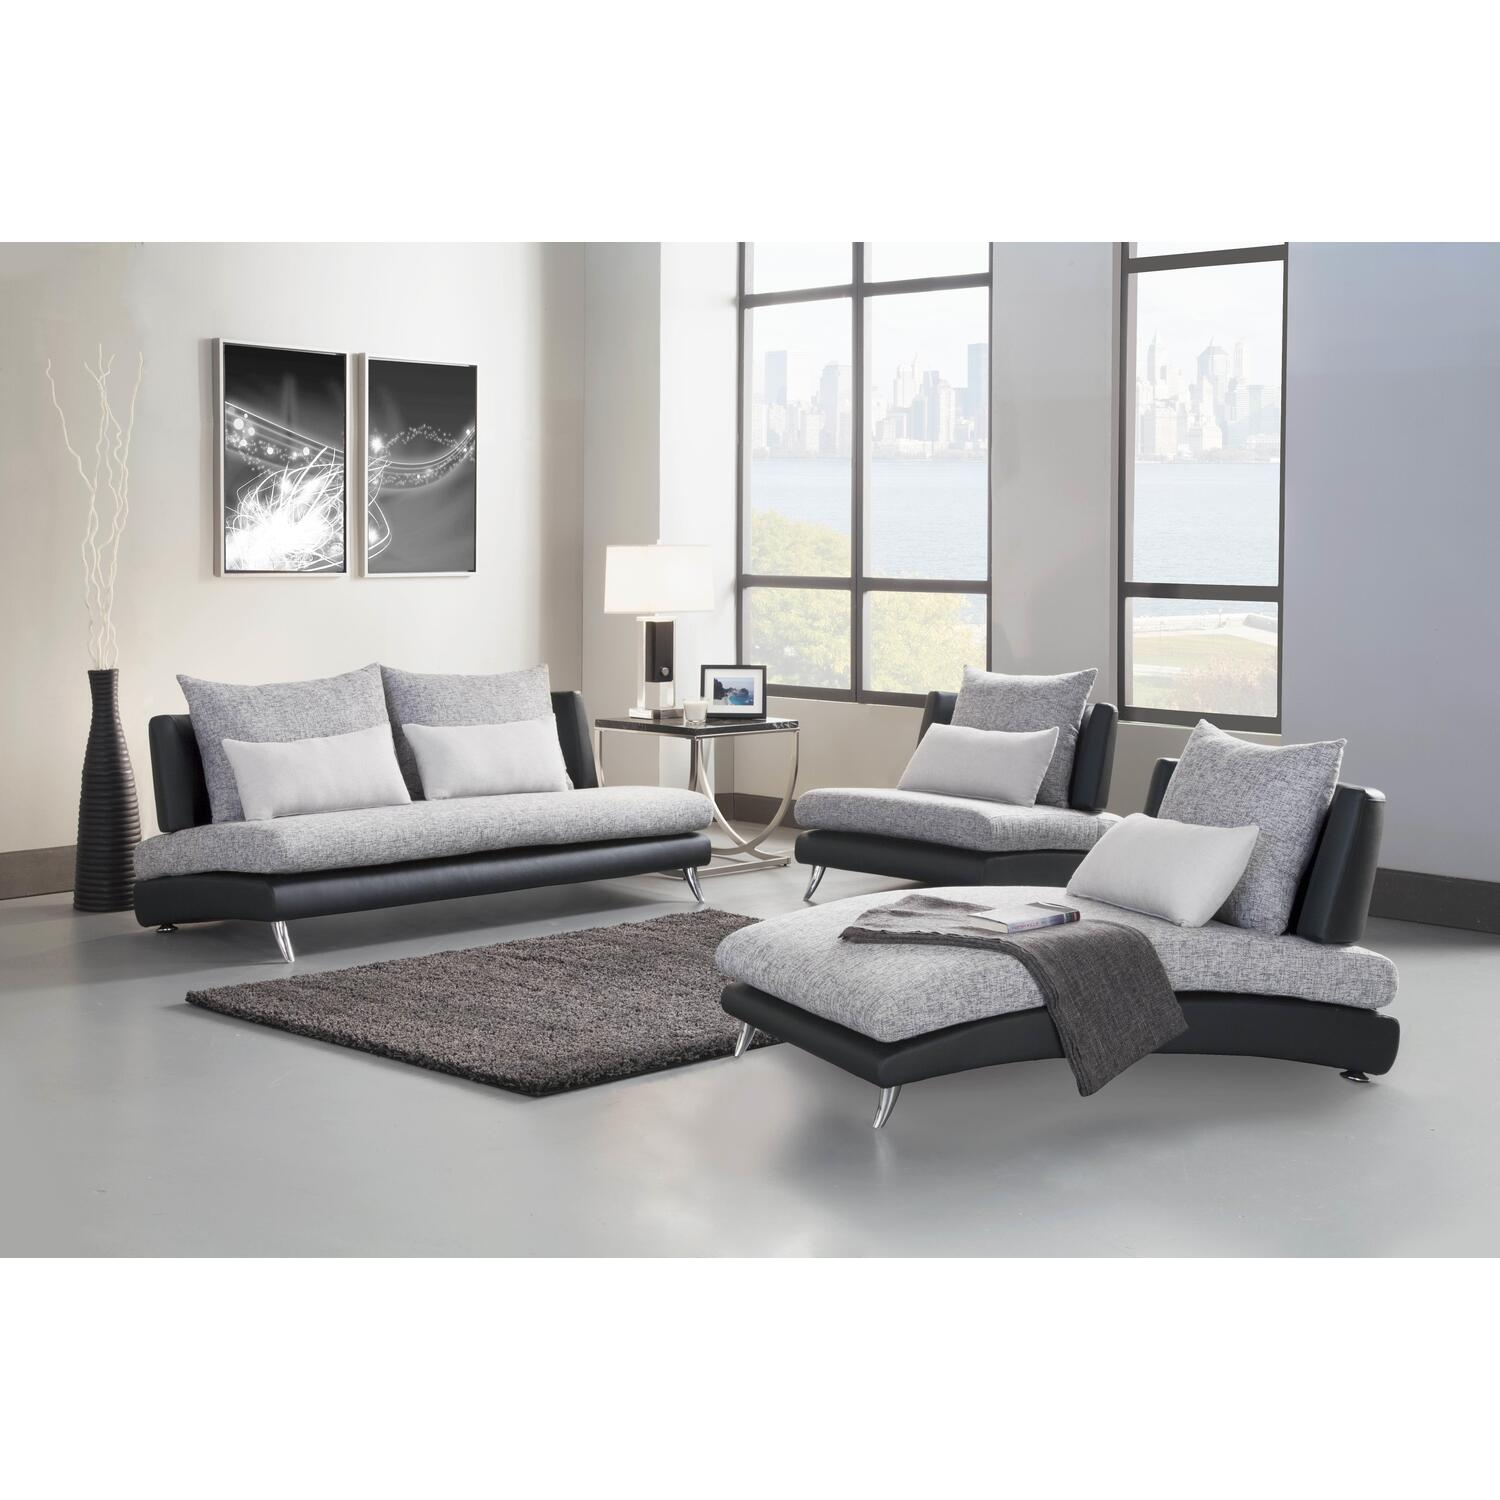 Homelegance renton living room set by oj commerce 1 444 for Drawing room furniture set